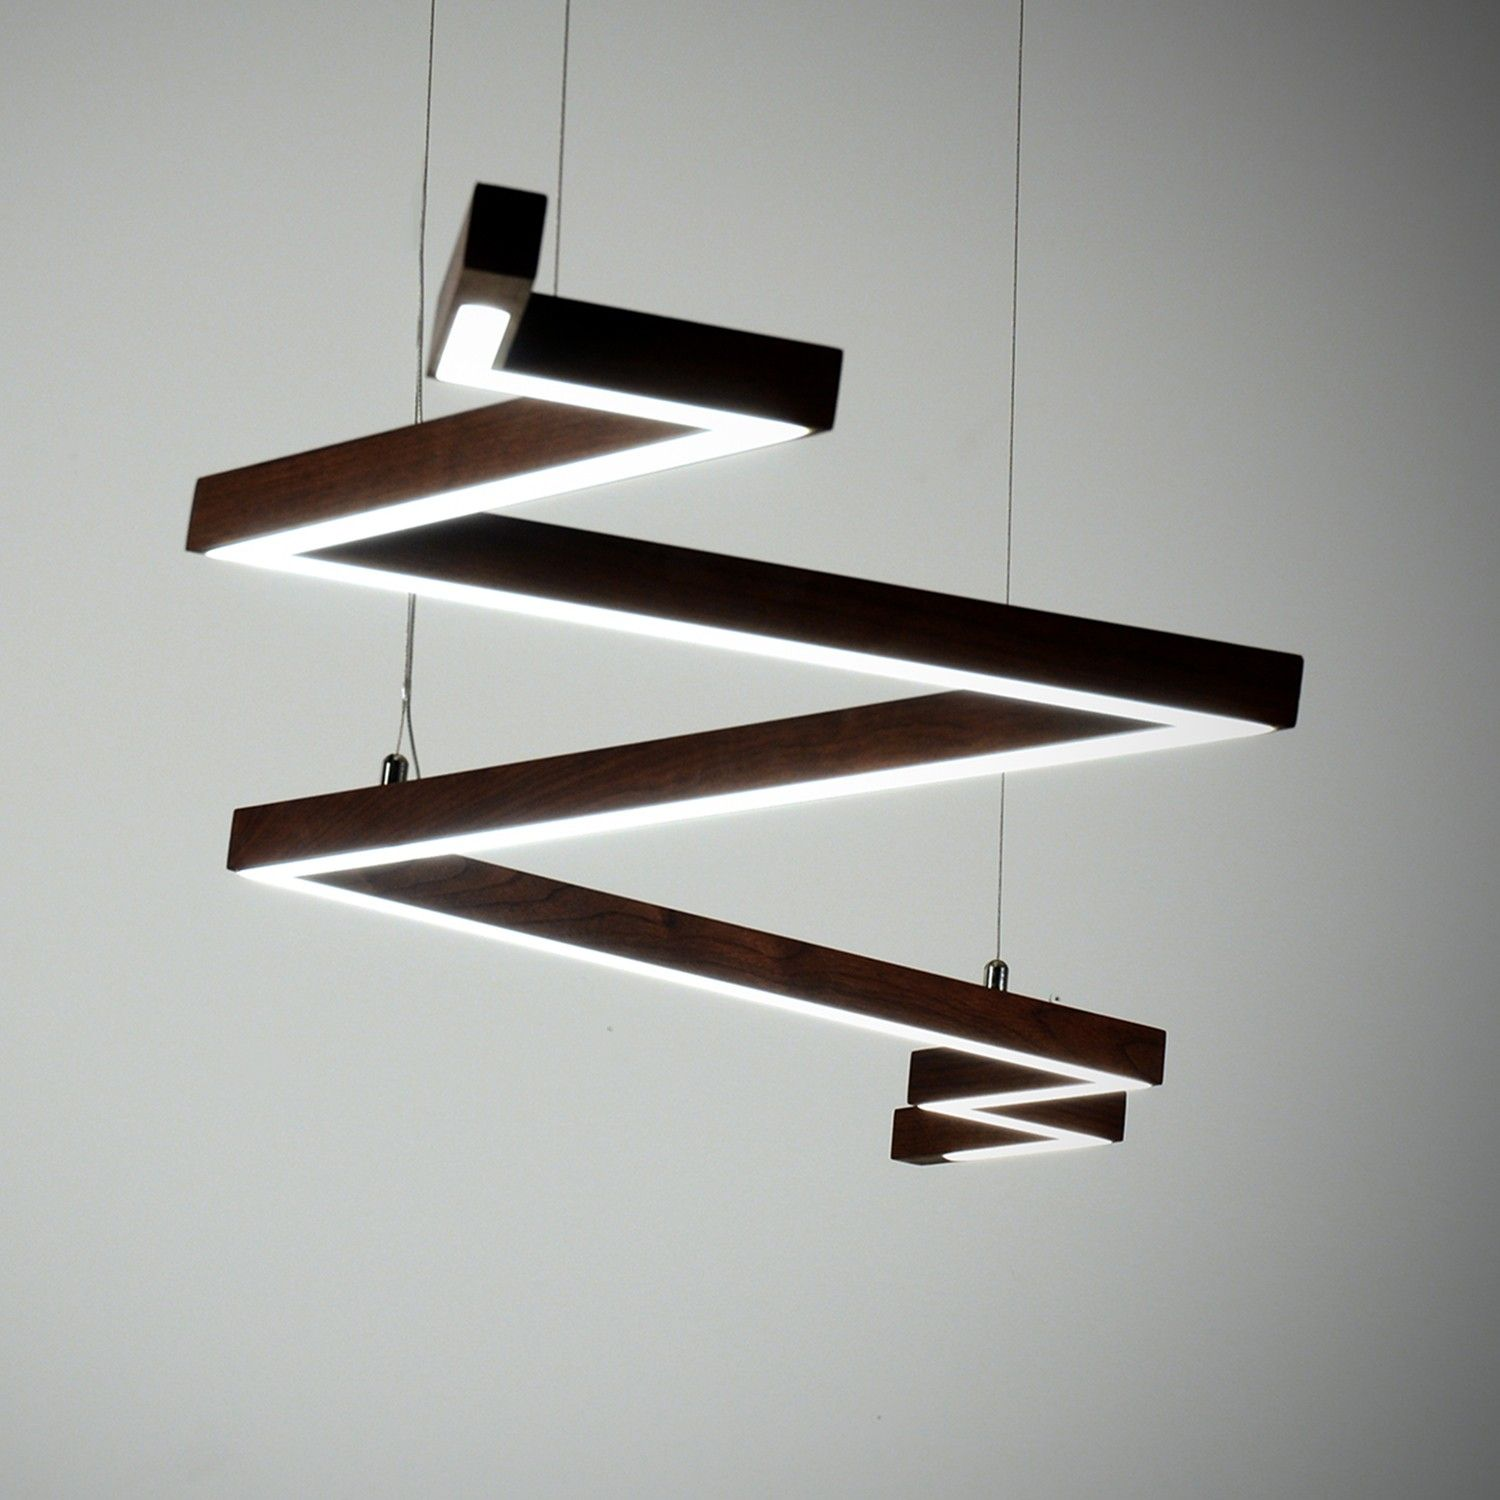 Lampe Plafonnier Design Introducing Hollis Morris Lighting Lumière Led Pendant Lights